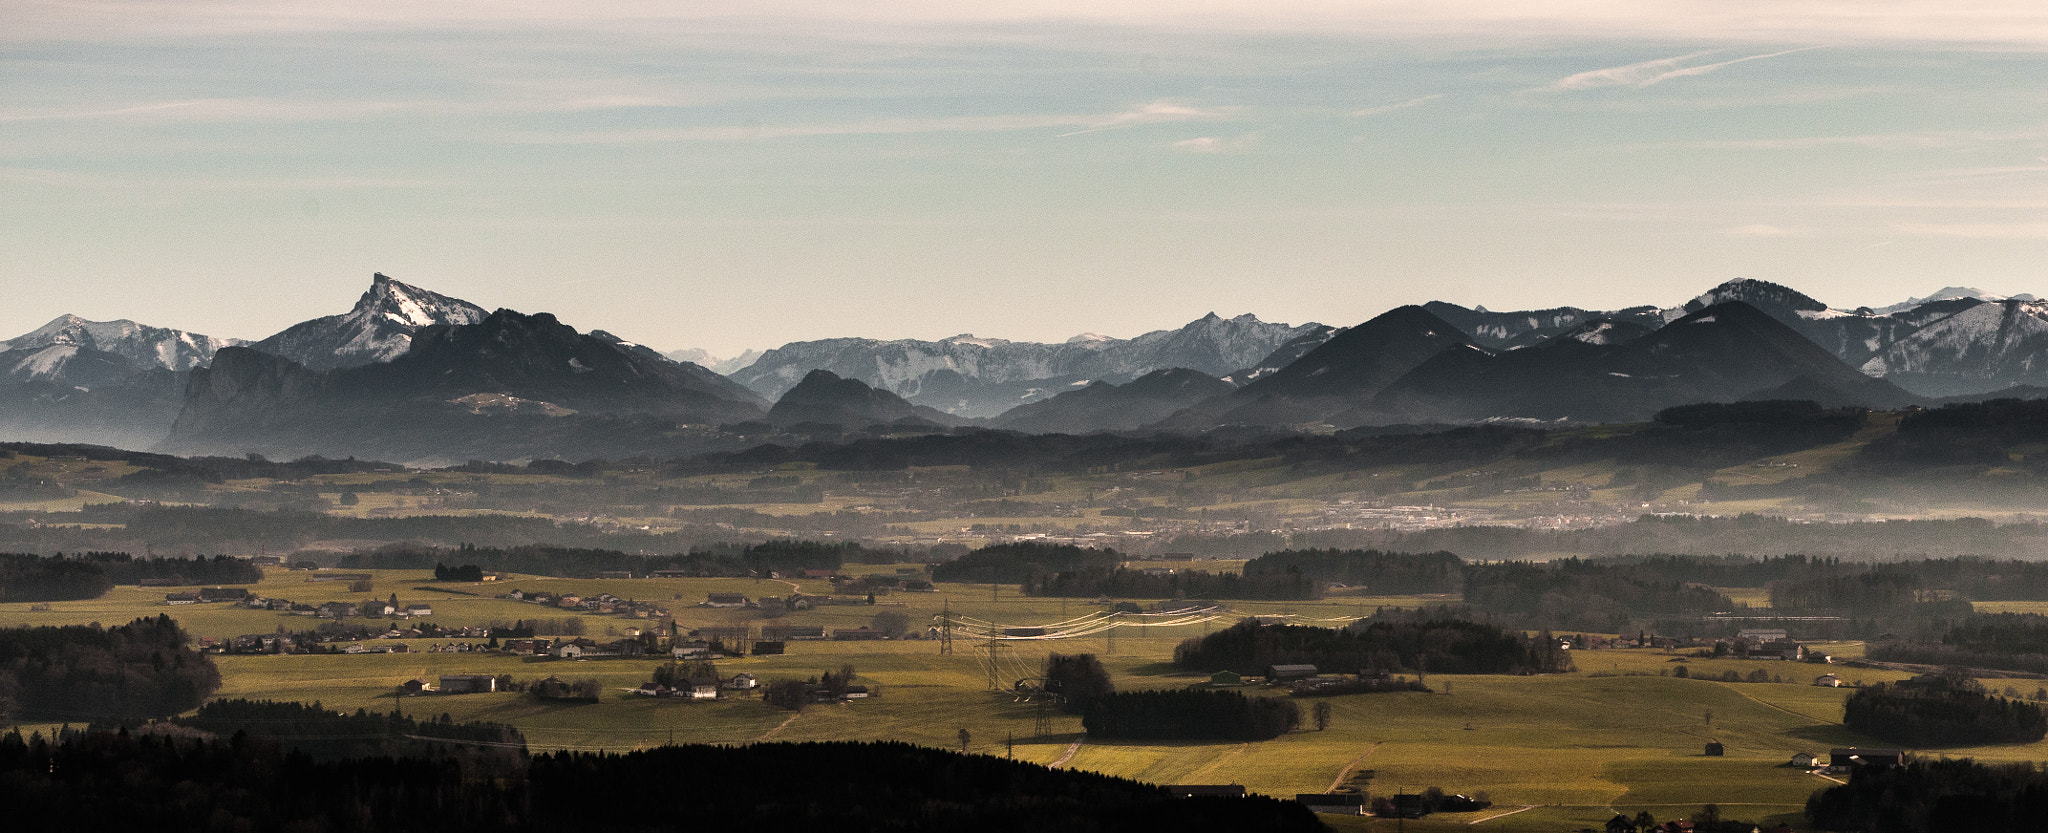 Photograph Salzbourg - Alpes - Photo 4 by Francois-Xavier Thiebaud on 500px